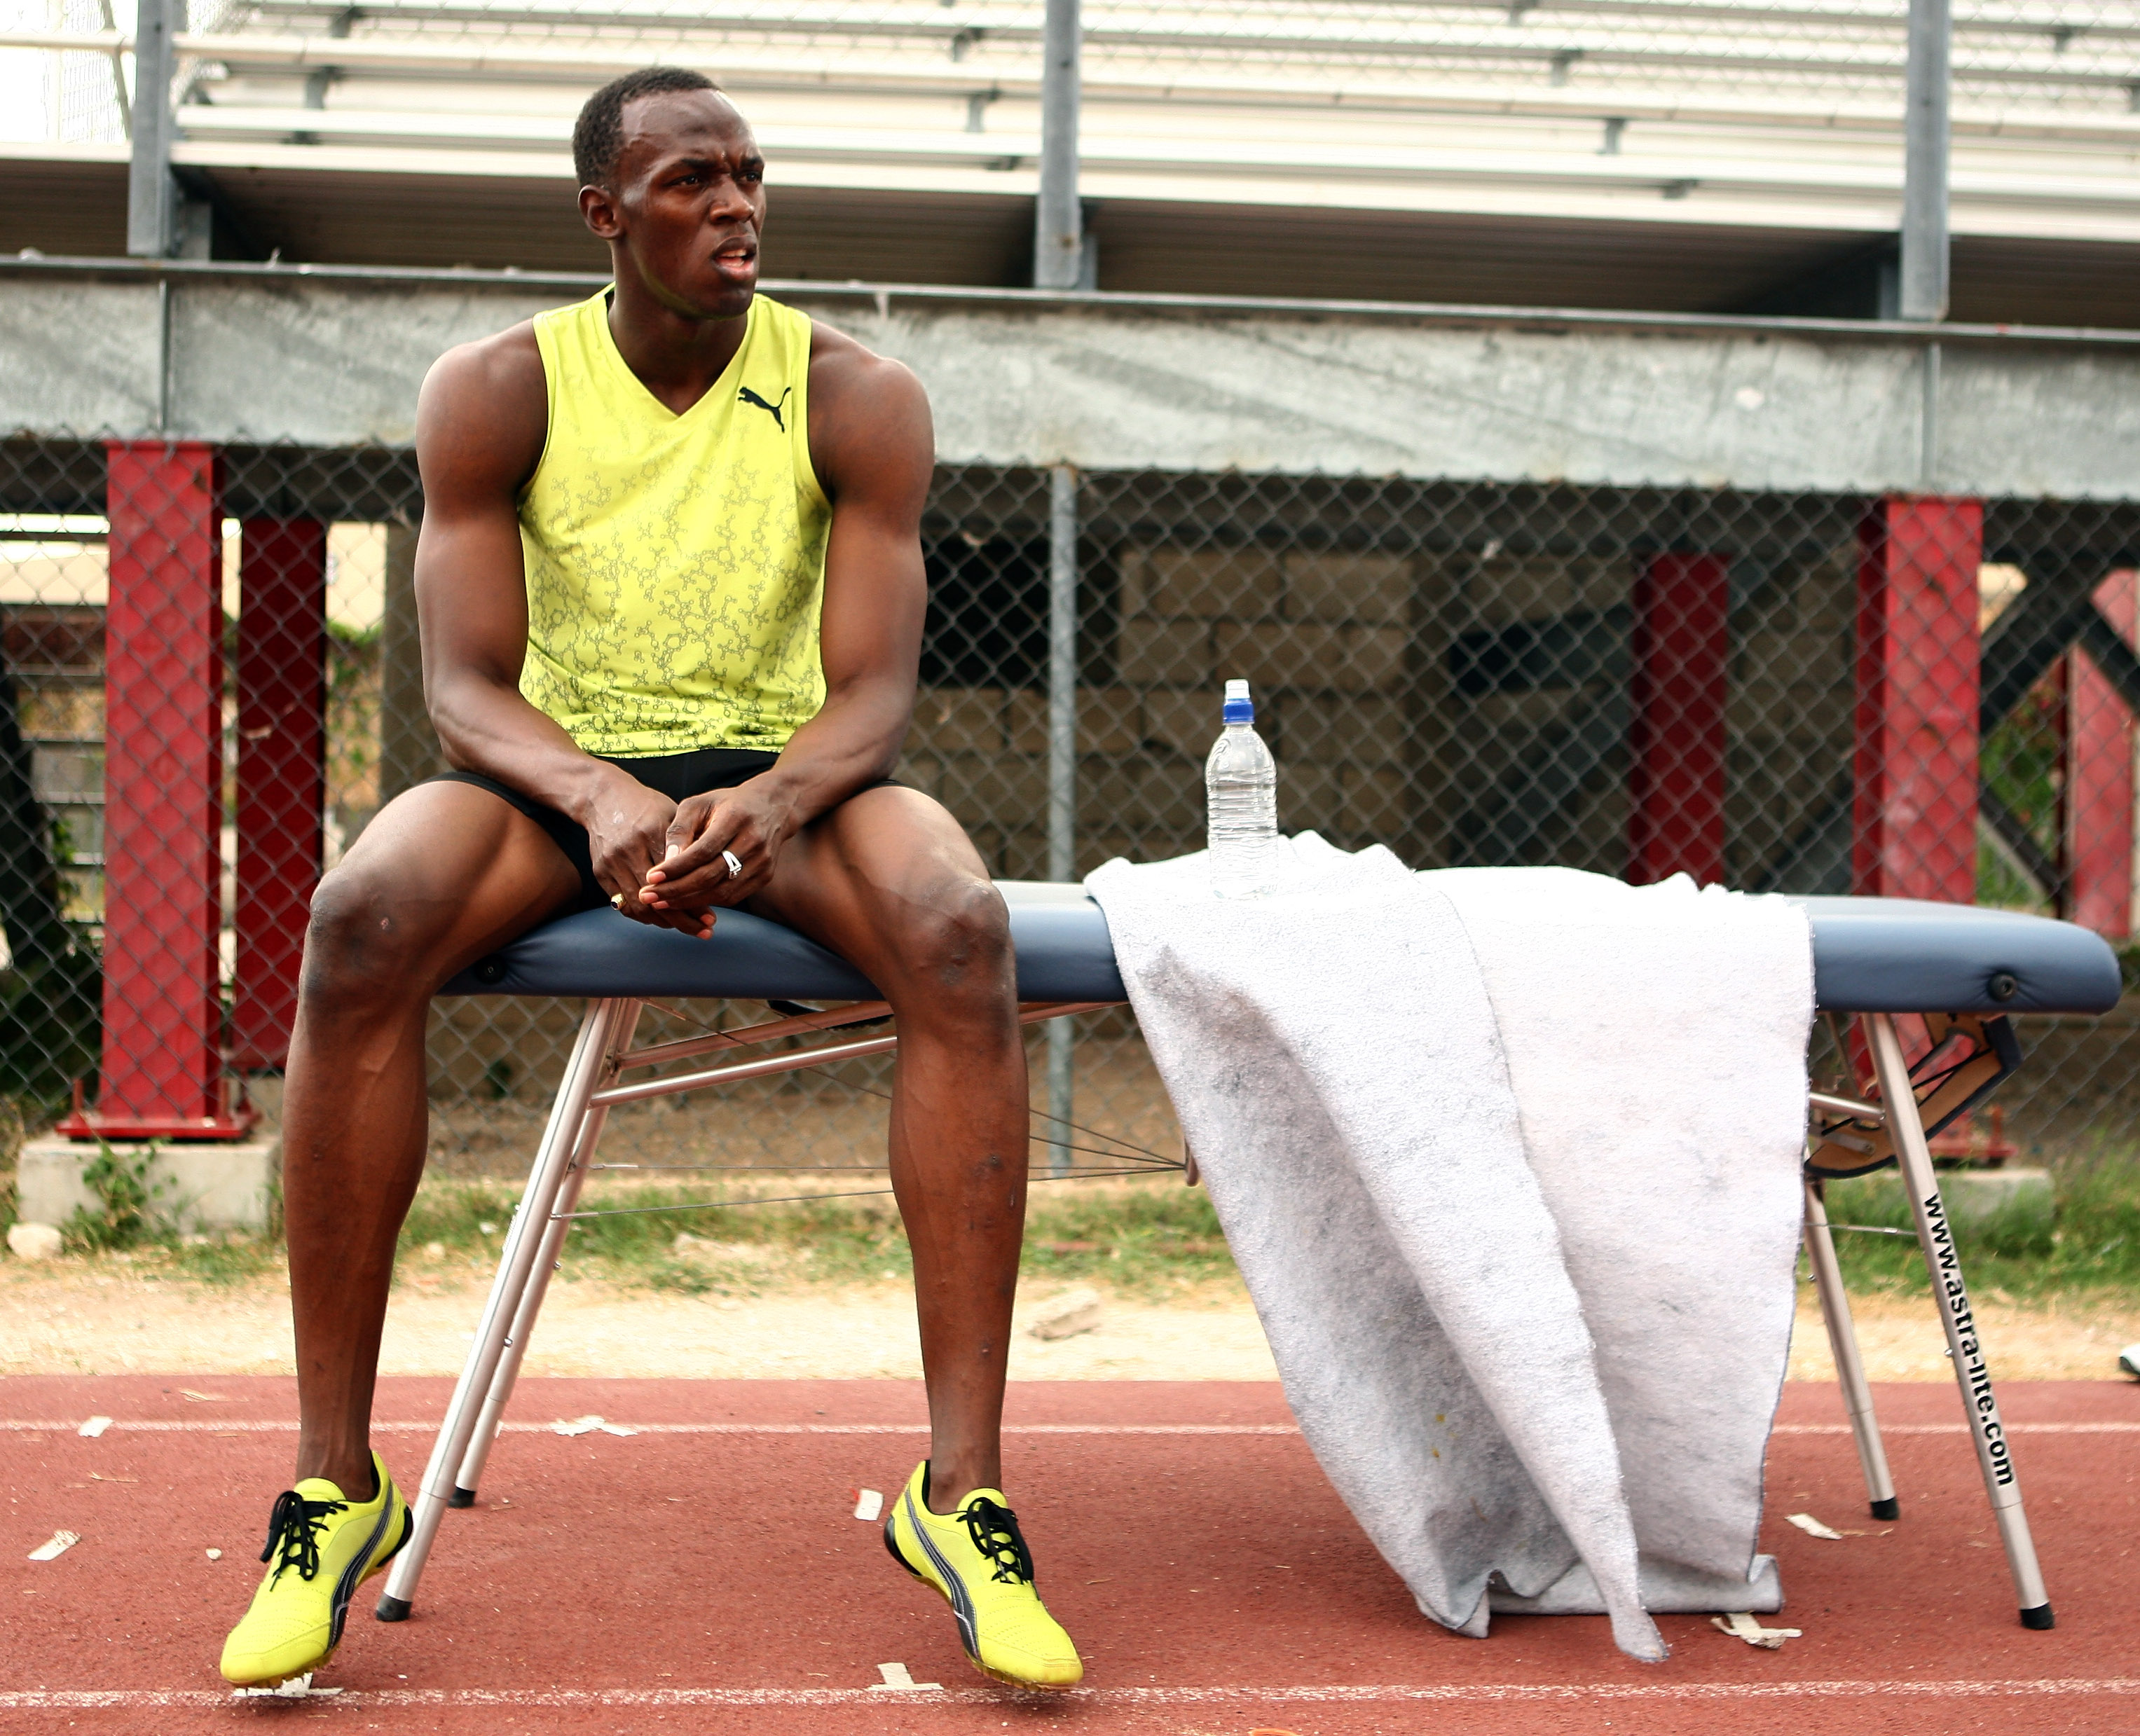 KINGSTON, JAMAICA - APRIL 06: Usain Bolt of Jamaica sits on a massage table following a training session at the National Stadium on April 6, 2009 in Kingston, Jamaica. (Photo by Ian Walton/Getty Images)